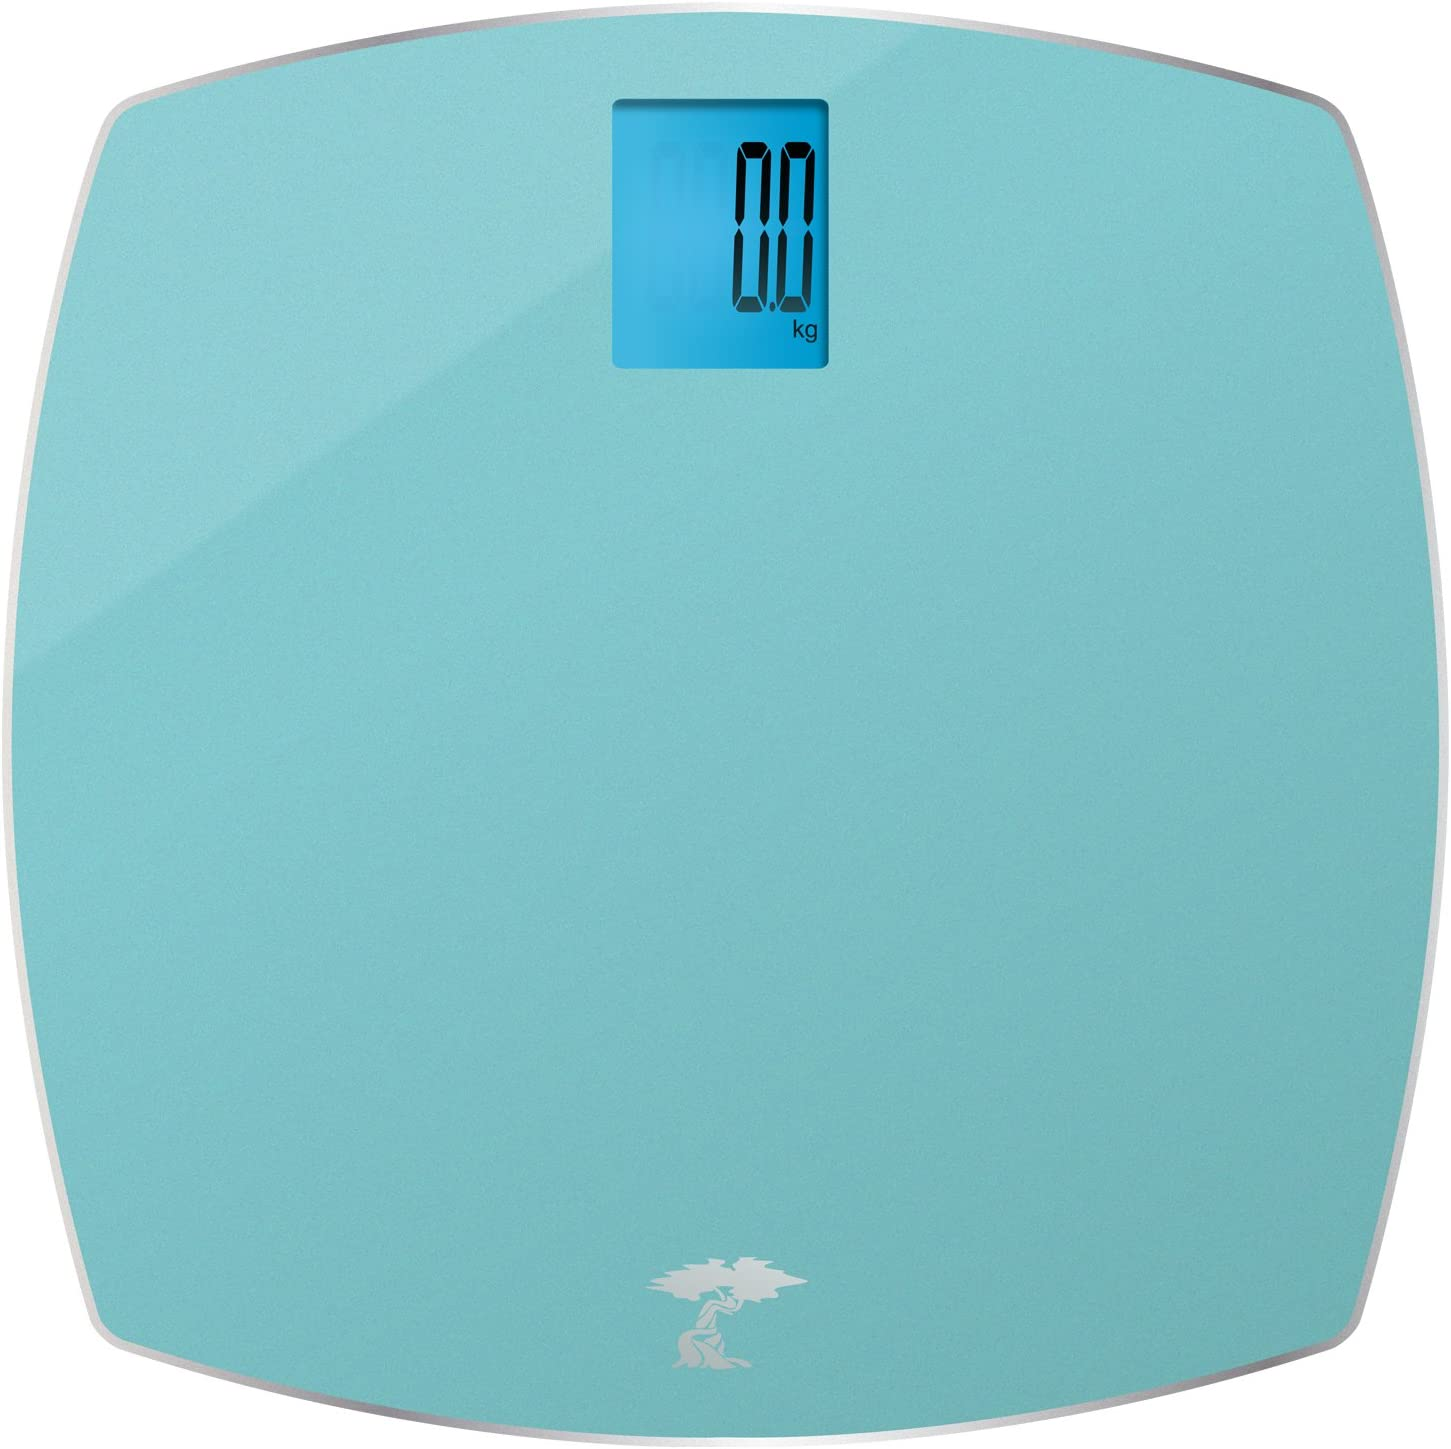 ToiletTree Products 400 lb Capacity Precision Digital Glass Bathroom Scale, Blue